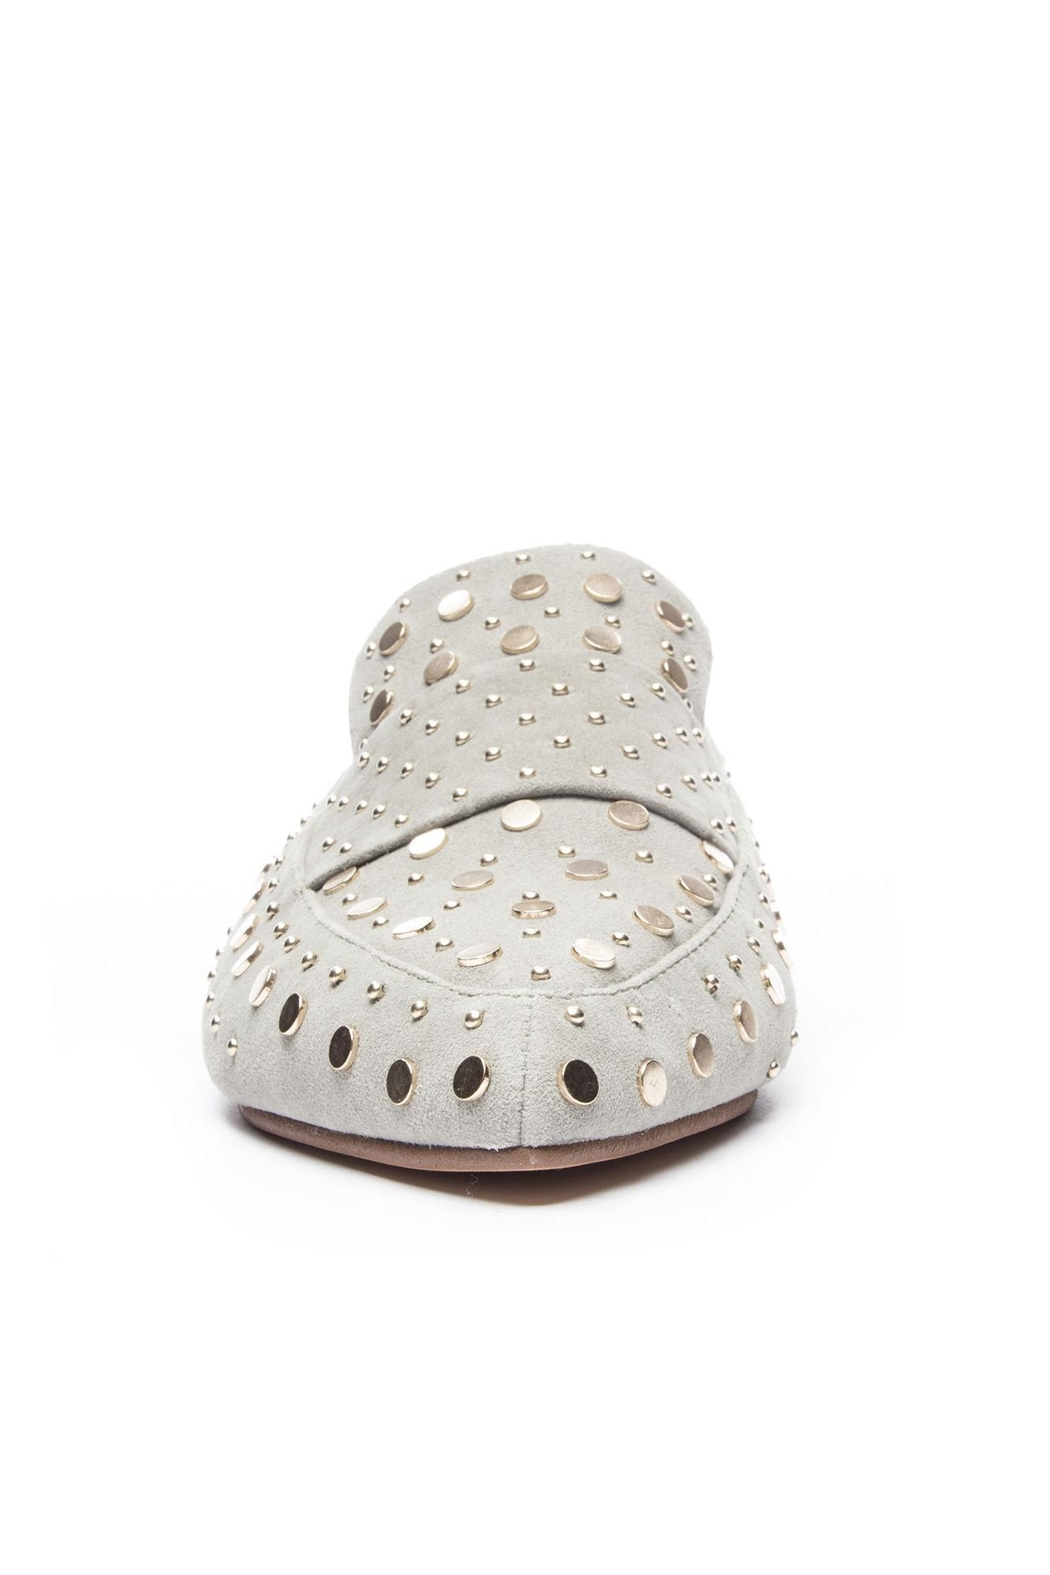 Kristin Cavallari for Chinese Laundry Charlie Studded Mule - Side Cropped Image